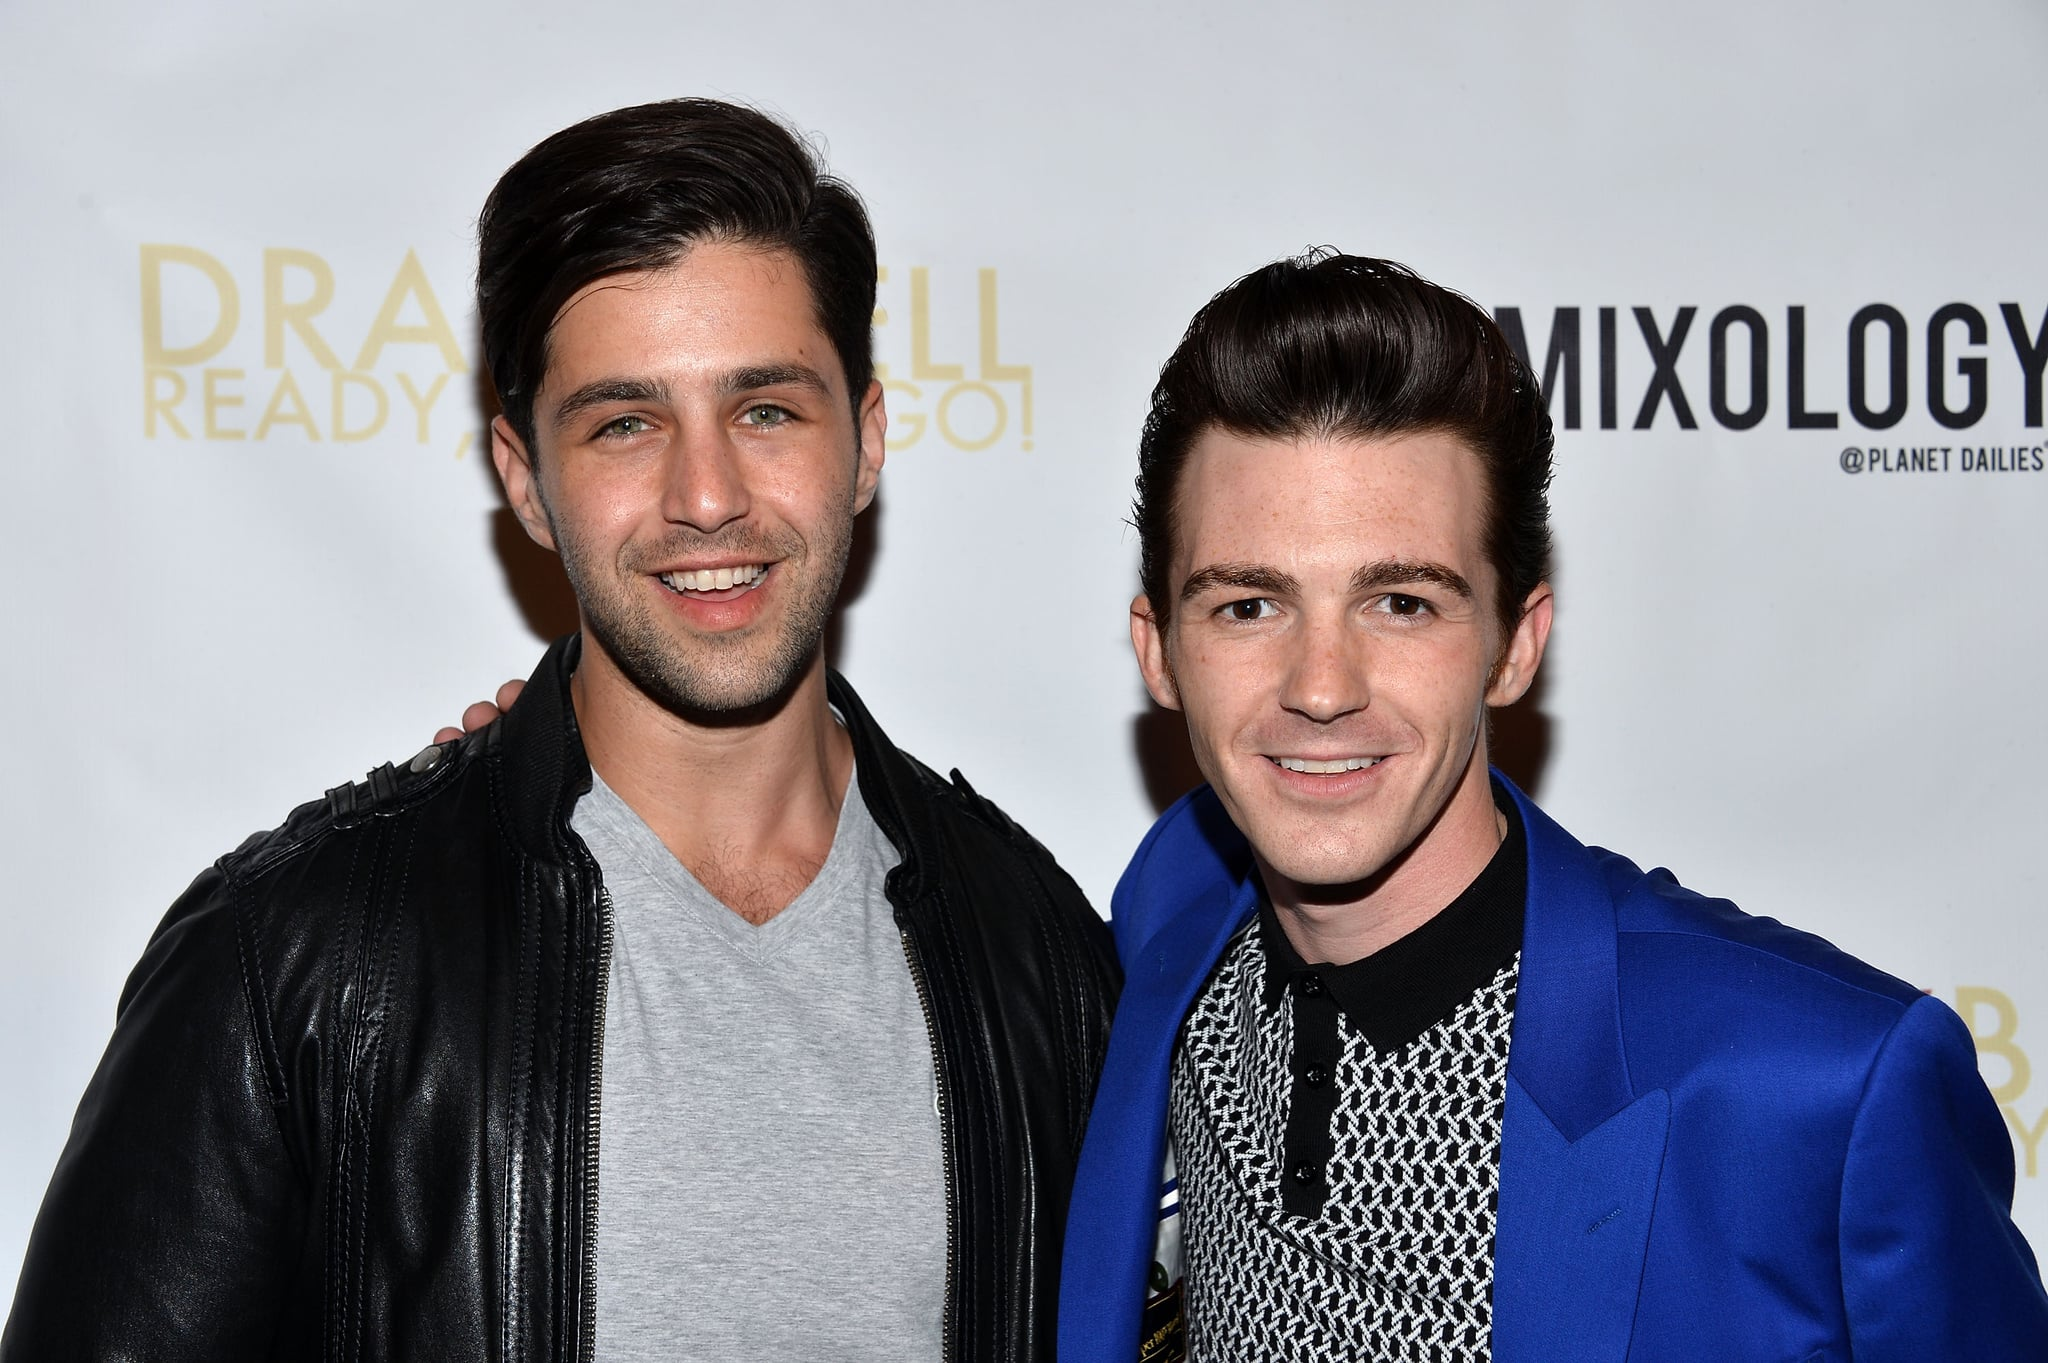 'Drake & Josh' alum Josh Peck marries longtime girlfriend